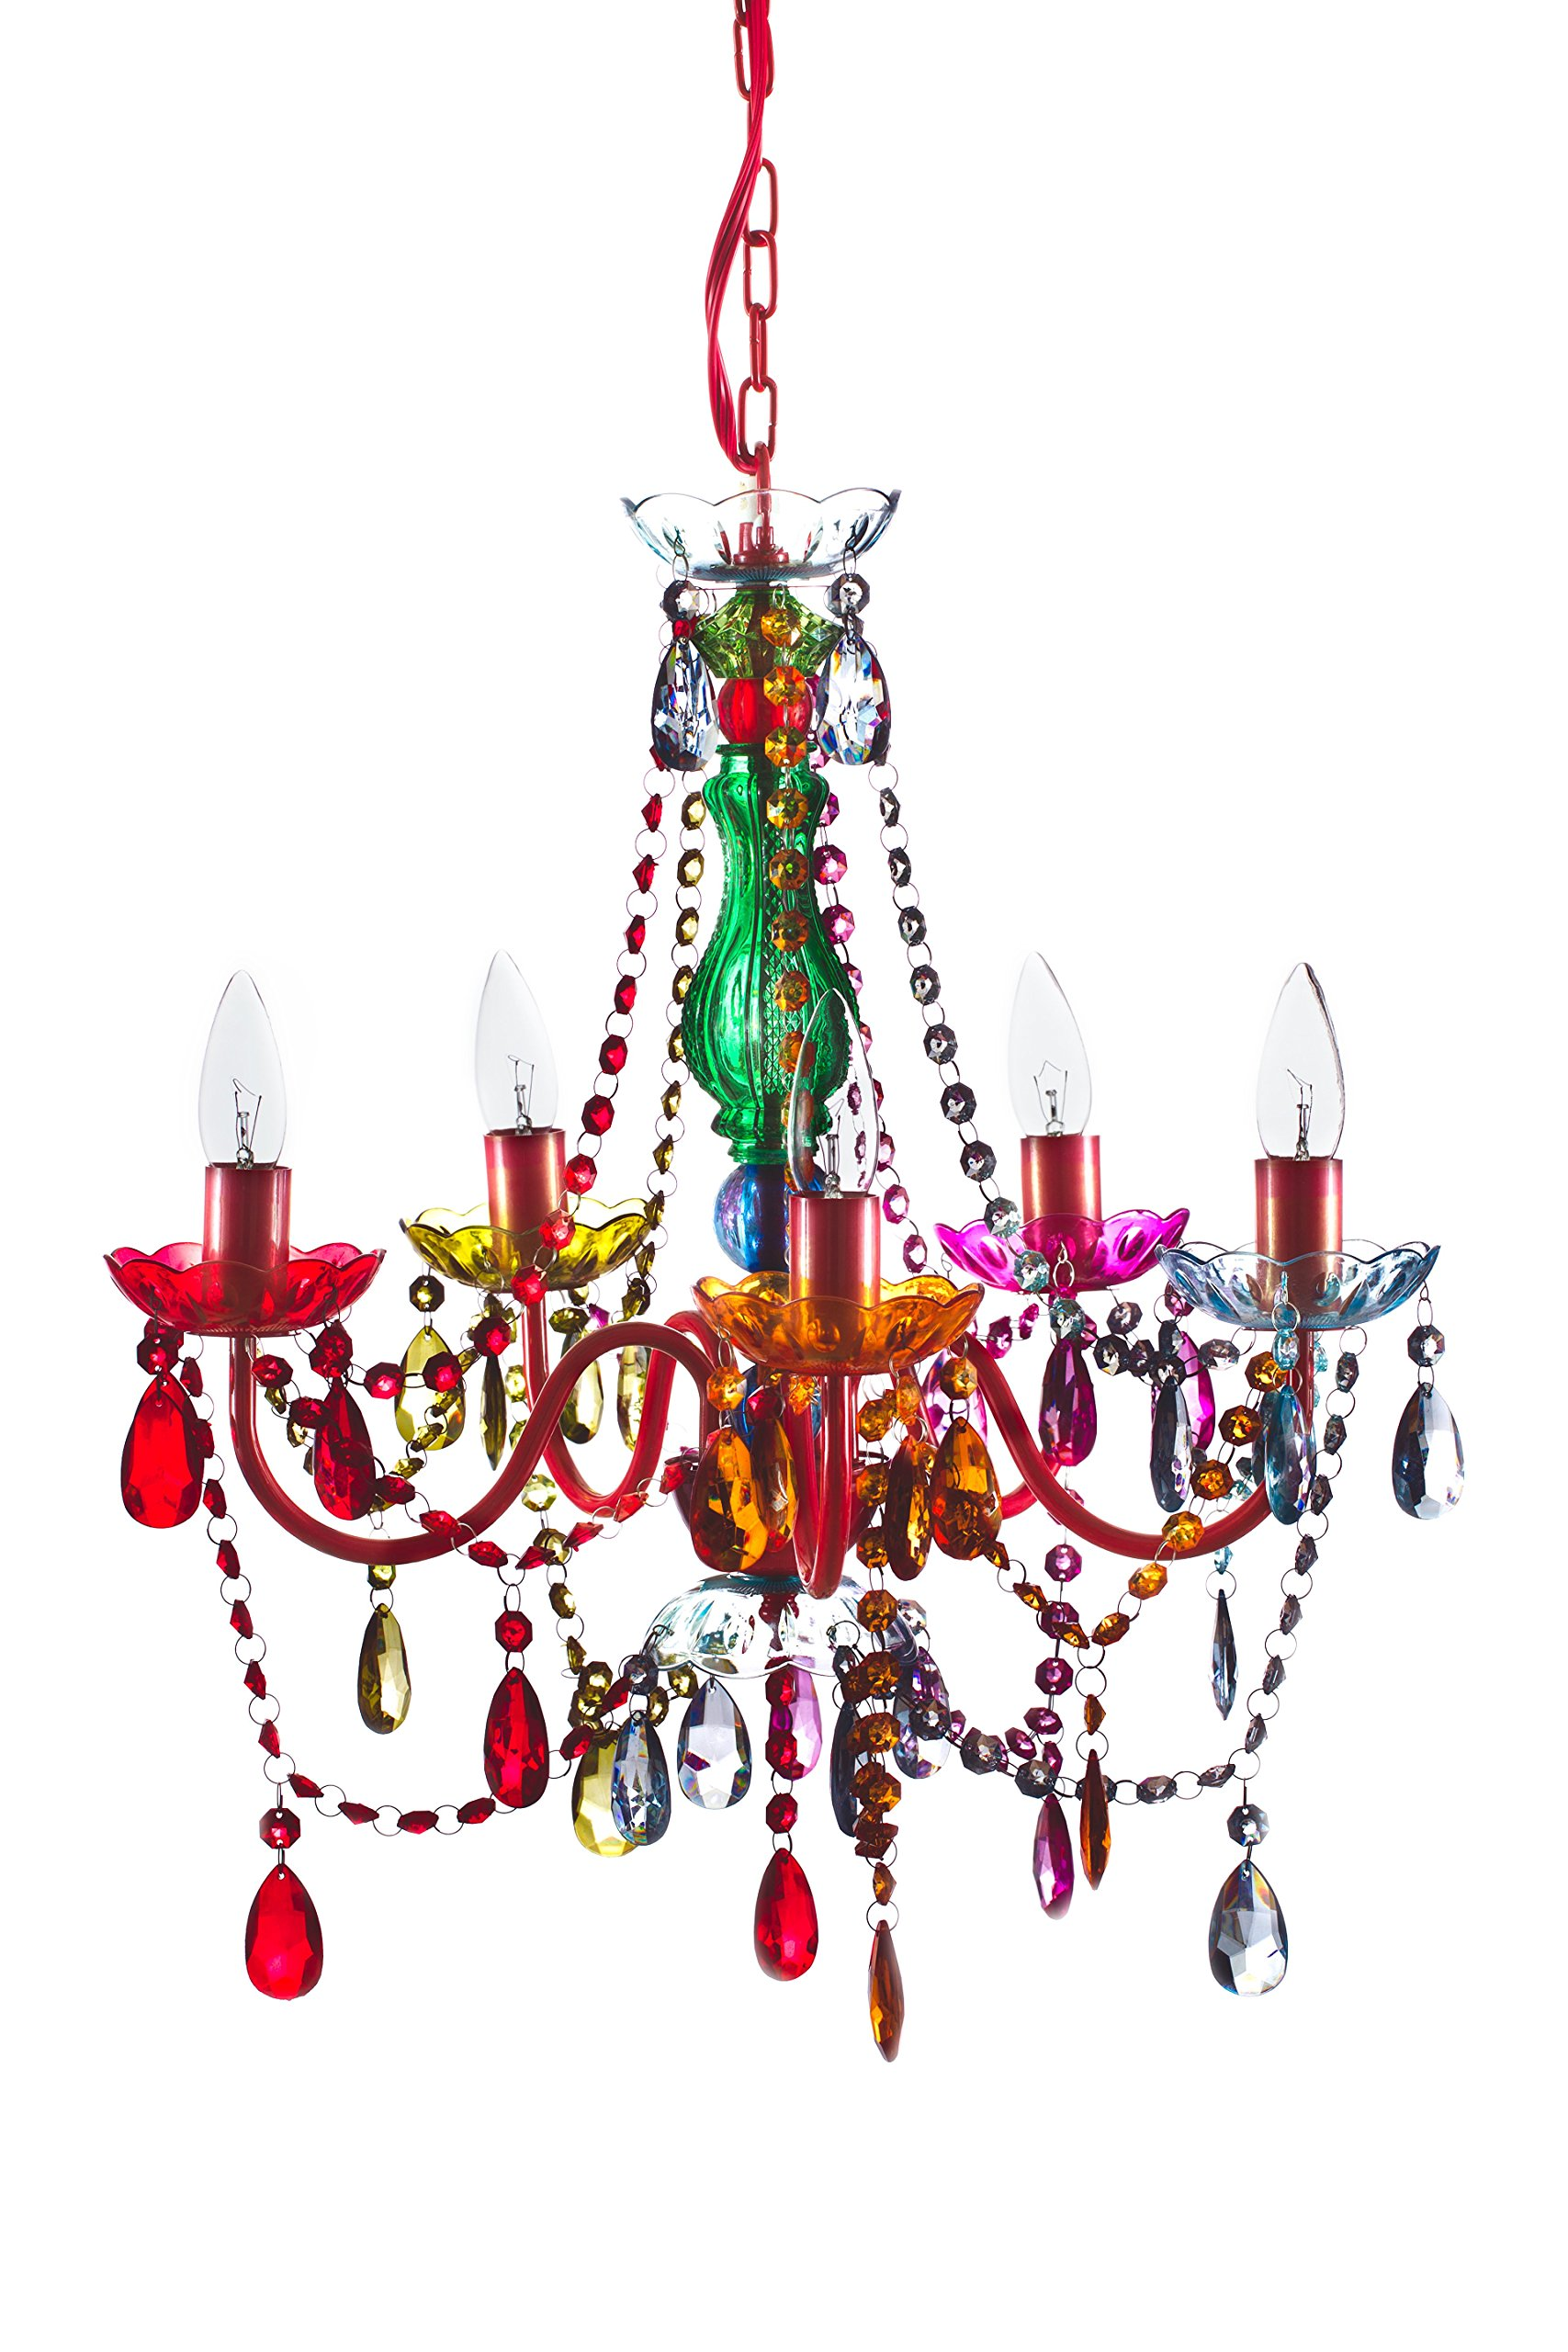 Original gypsy chandelier color 5 light medium multi color acrylic original gypsy chandelier color 5 light medium multi color acrylic crystals red aloadofball Image collections